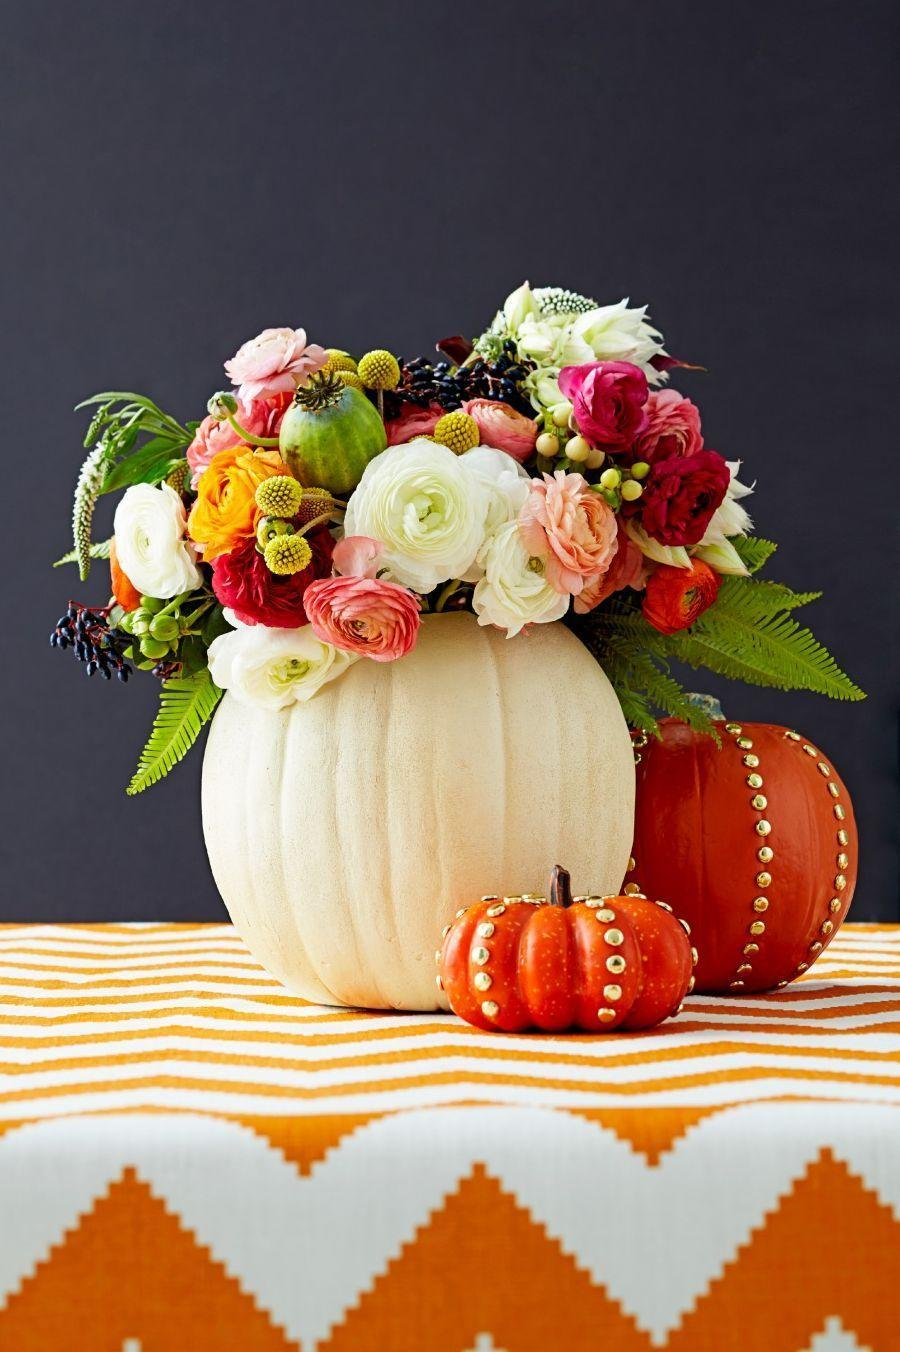 <p>Rather than settle for a traditional vase, make one out of a basic gourd. Try enhancing it with gold studs for a trendy look. <br></p>